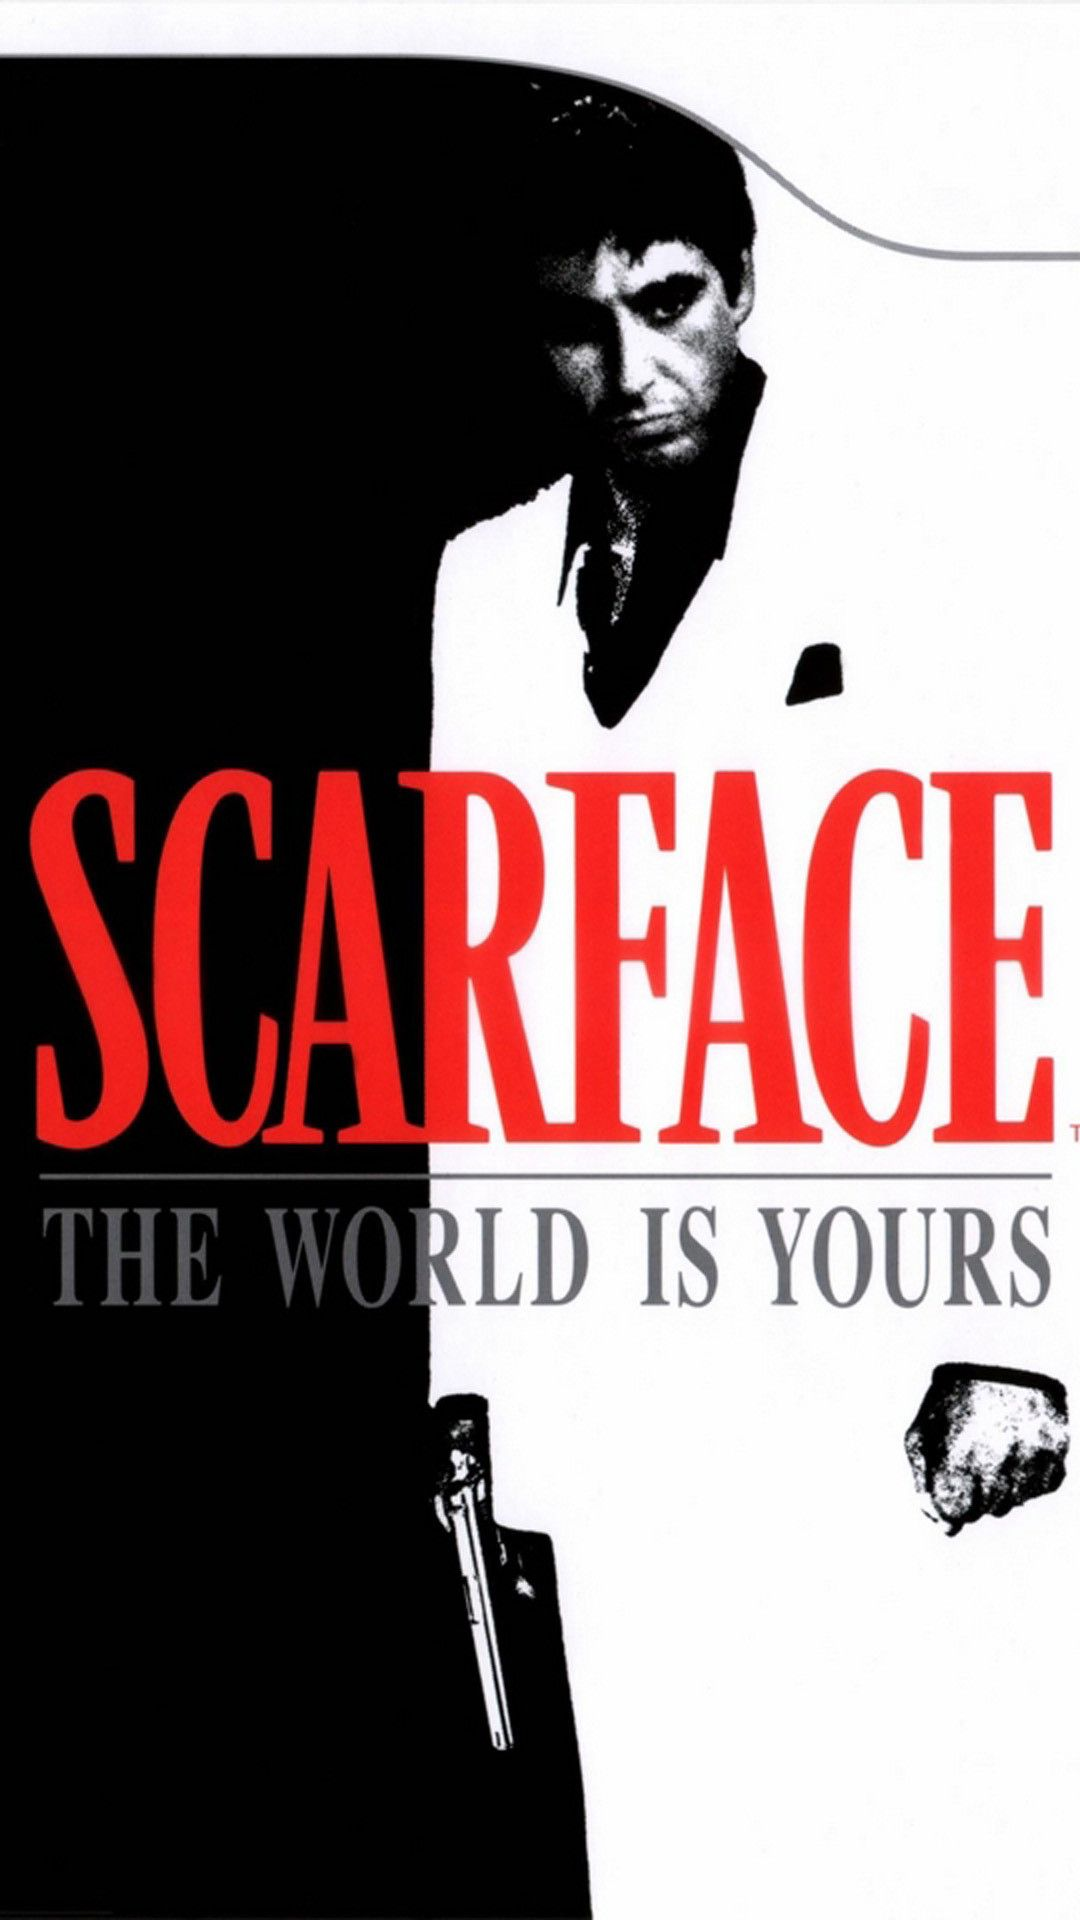 The World Is Yours Scarface Wallpapers Top Free The World Is